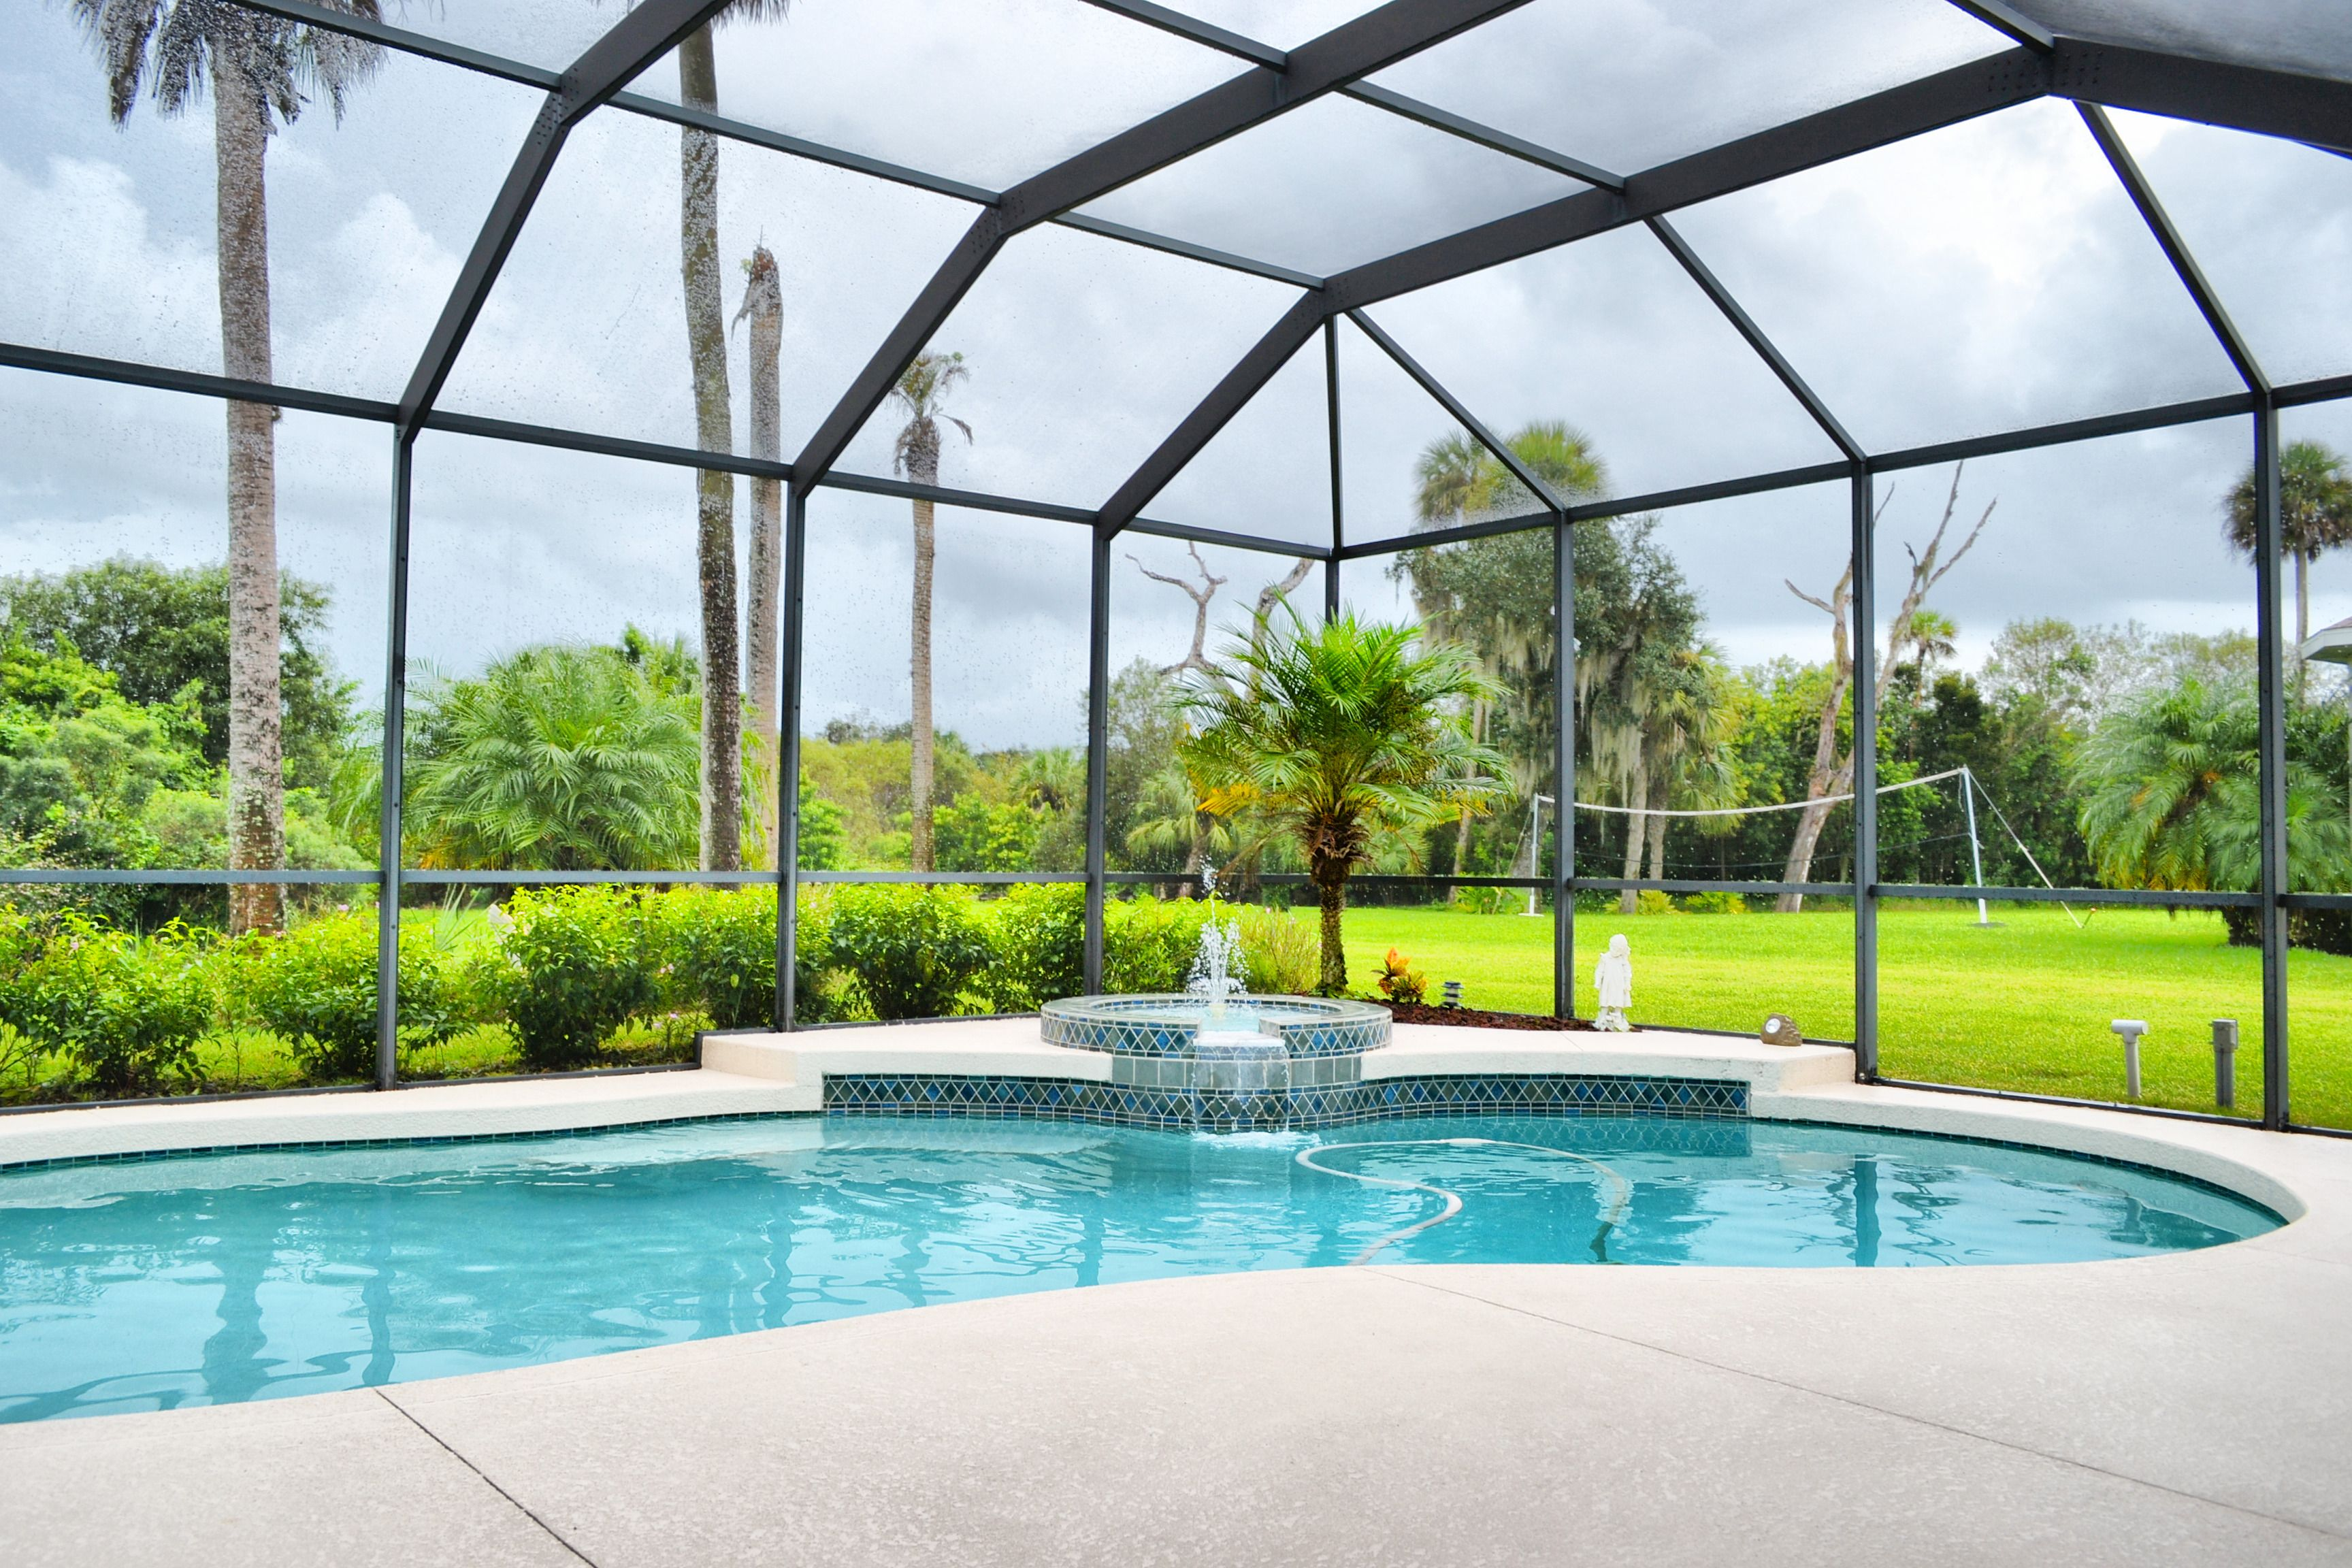 Parrish florida swimming pool fountain screened lanai for Florida lanai designs